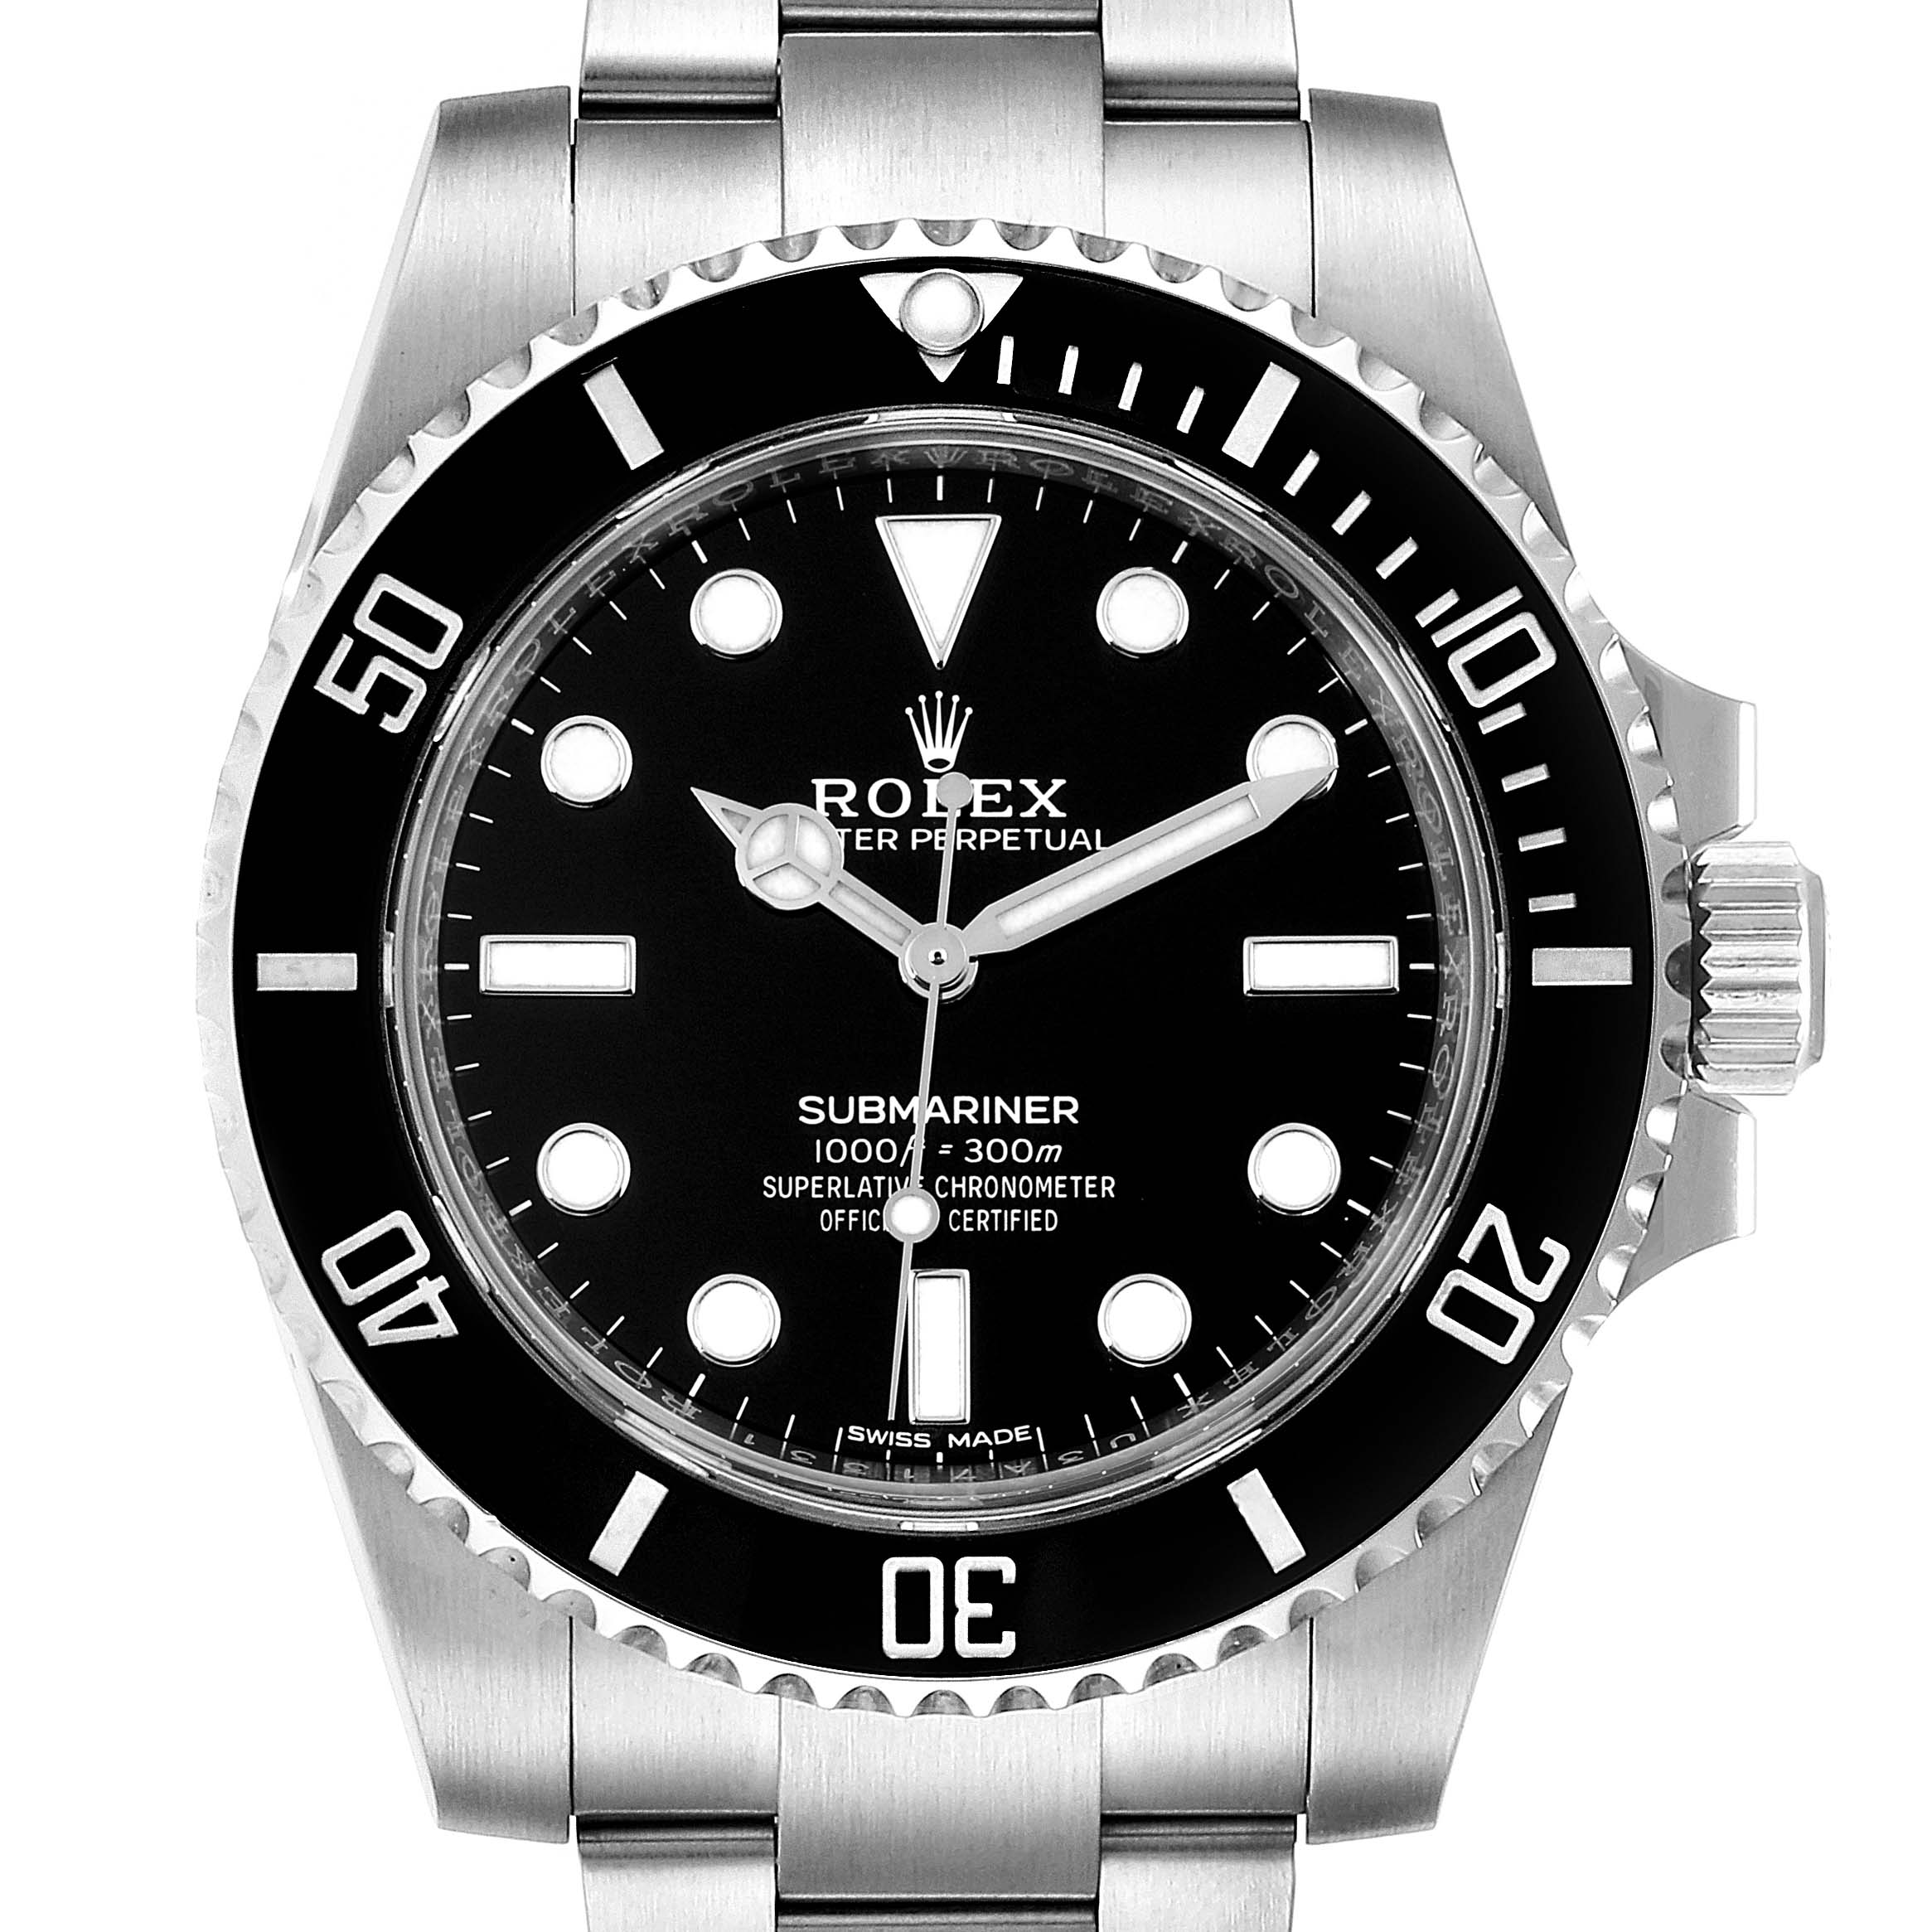 Photo of Rolex Submariner 40mm Ceramic Bezel Steel Watch 114060 Box Card